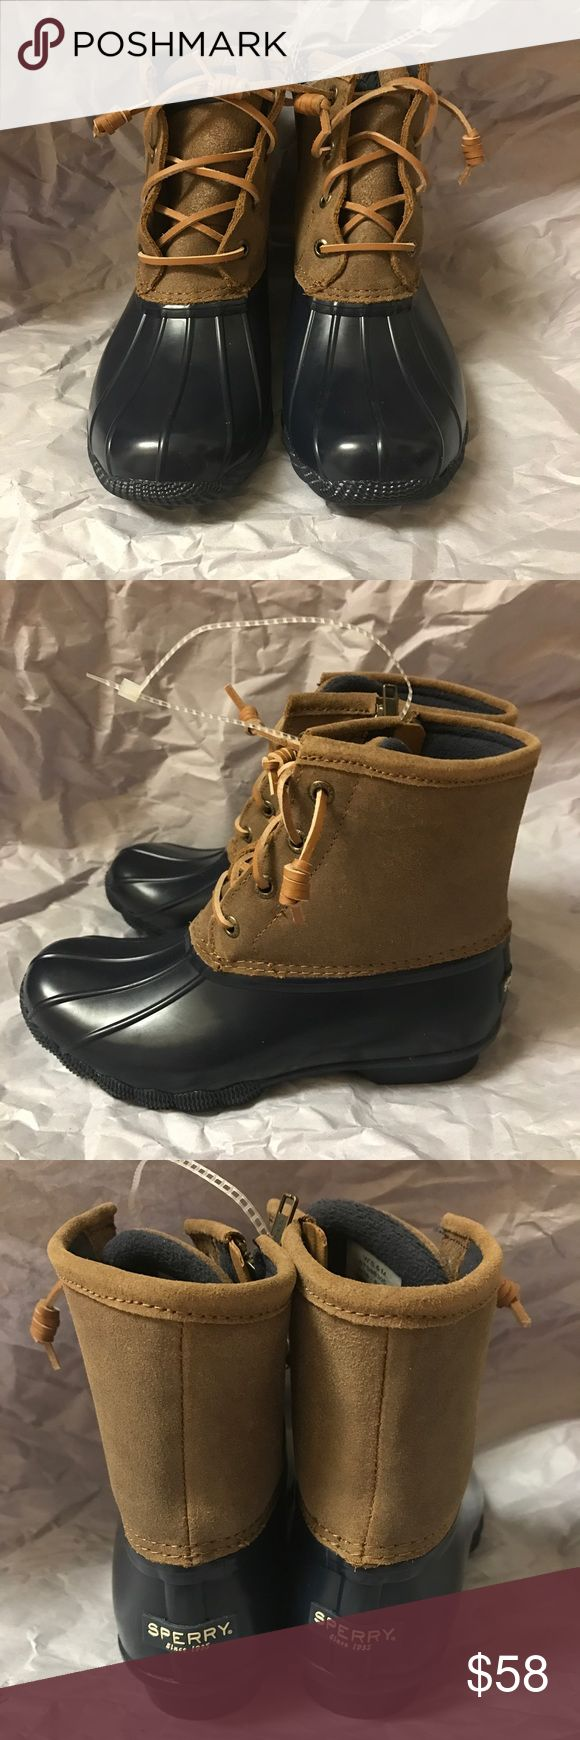 NWT Sperry DUCK BOOTS RAIN BOOTS WOMEN Brand new with store tag Sperry Shoes Winter & Rain Boots